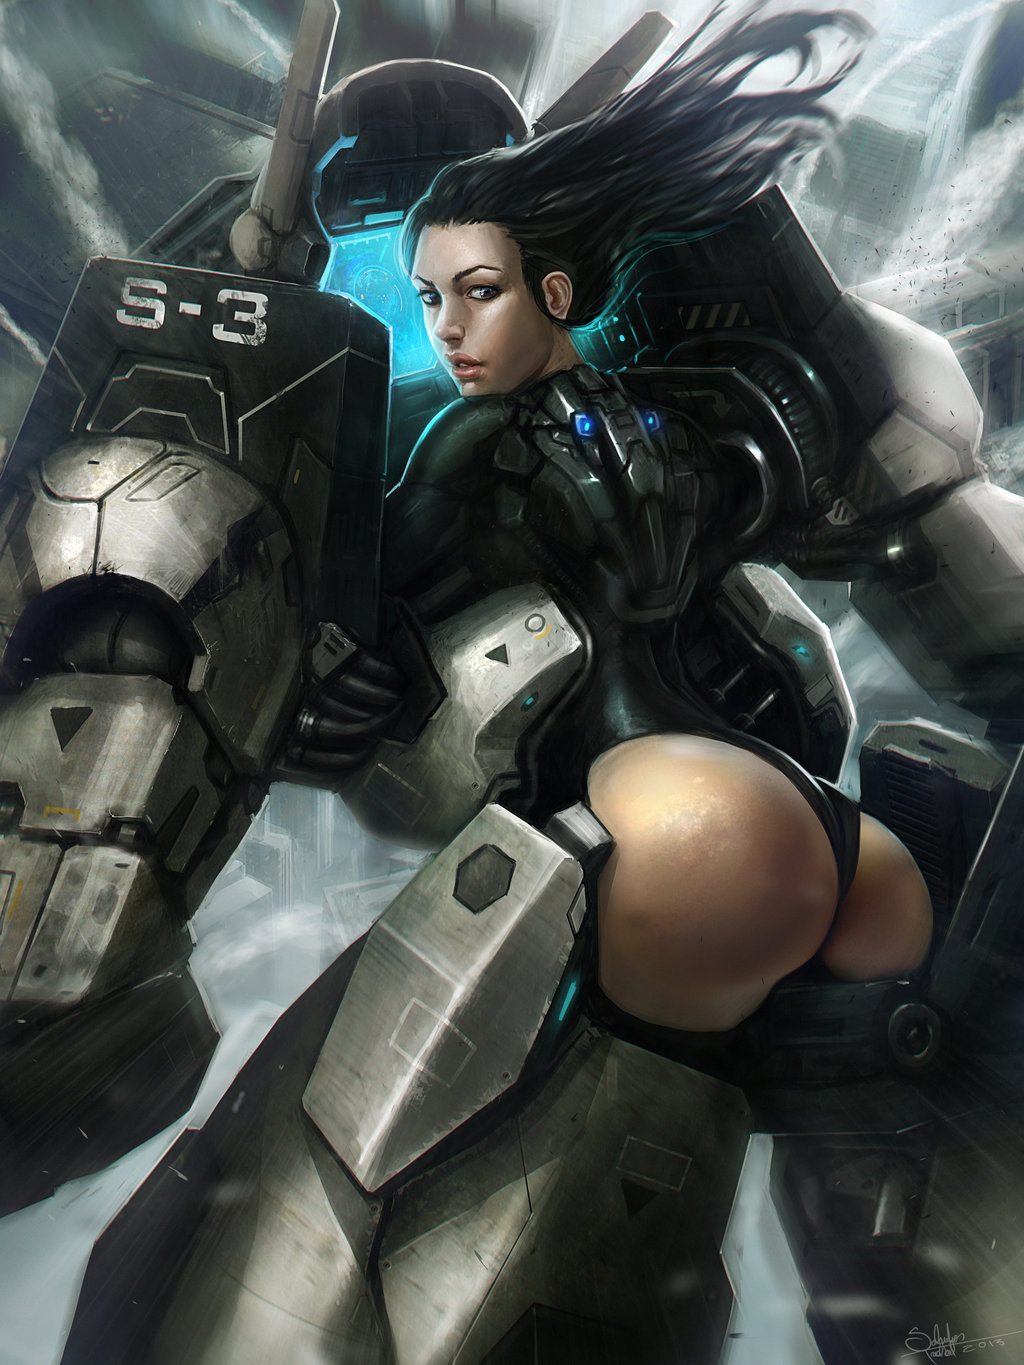 Erotic sci-fi fan art xxx tubes